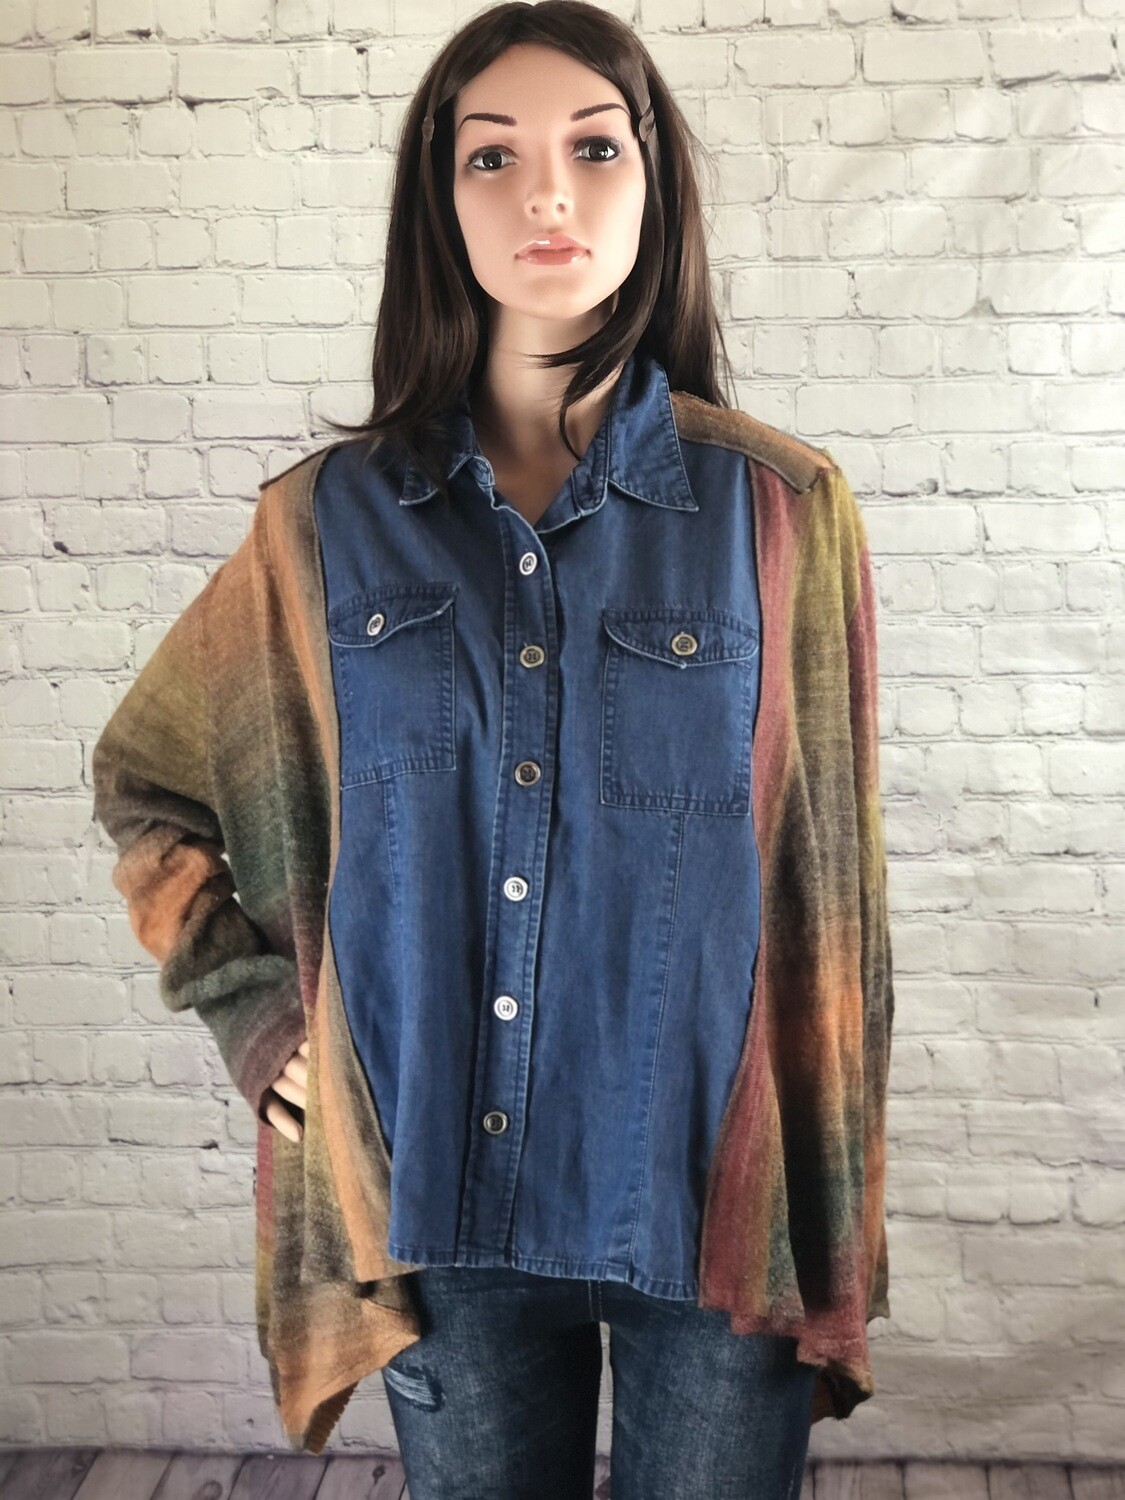 Rustic Jean Button Up Slouch Sweater Jacket Loose Fit Batwing Sleeve Patchwork S Threads Boutique Sustainable Fashion Size L